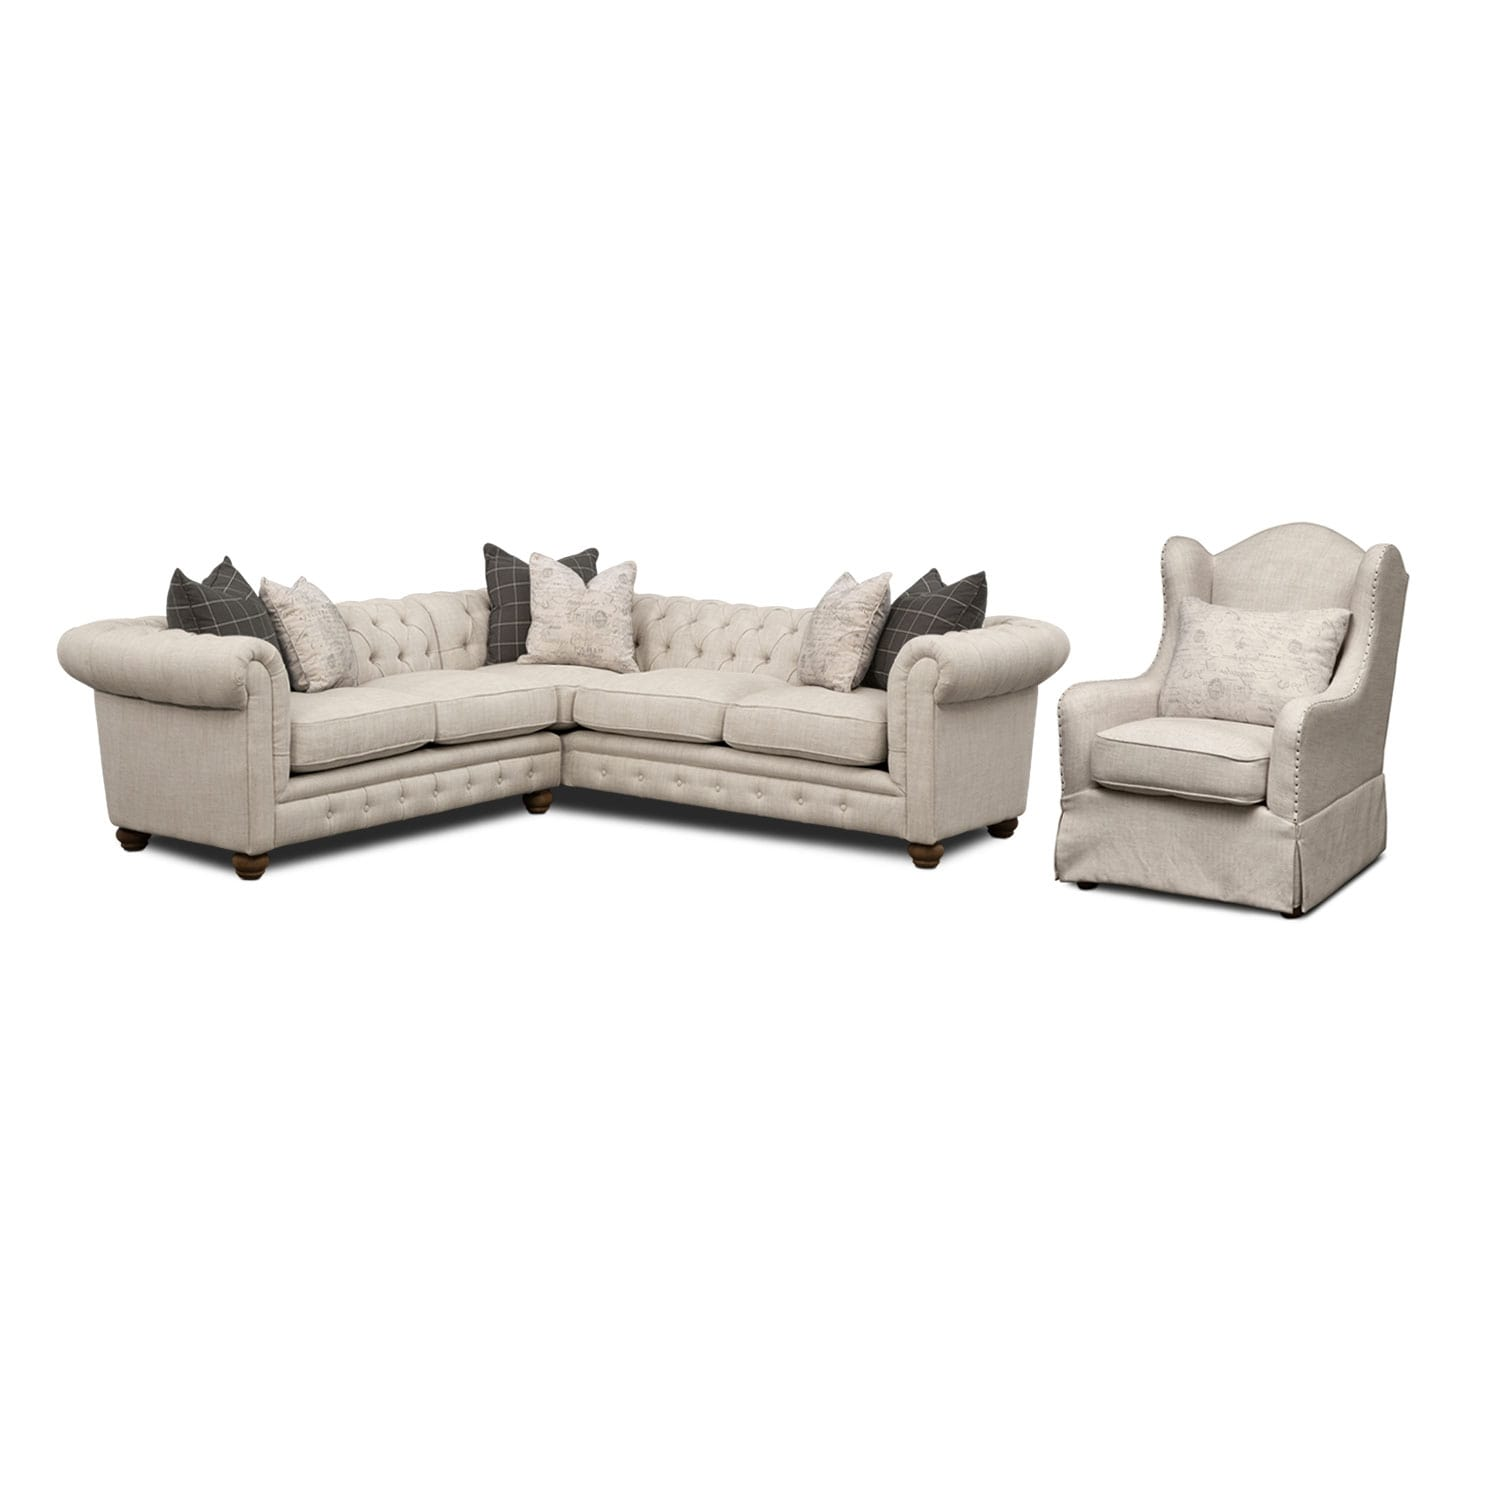 Madeline 2-Piece Sectional and Accent Chair Set - Beige